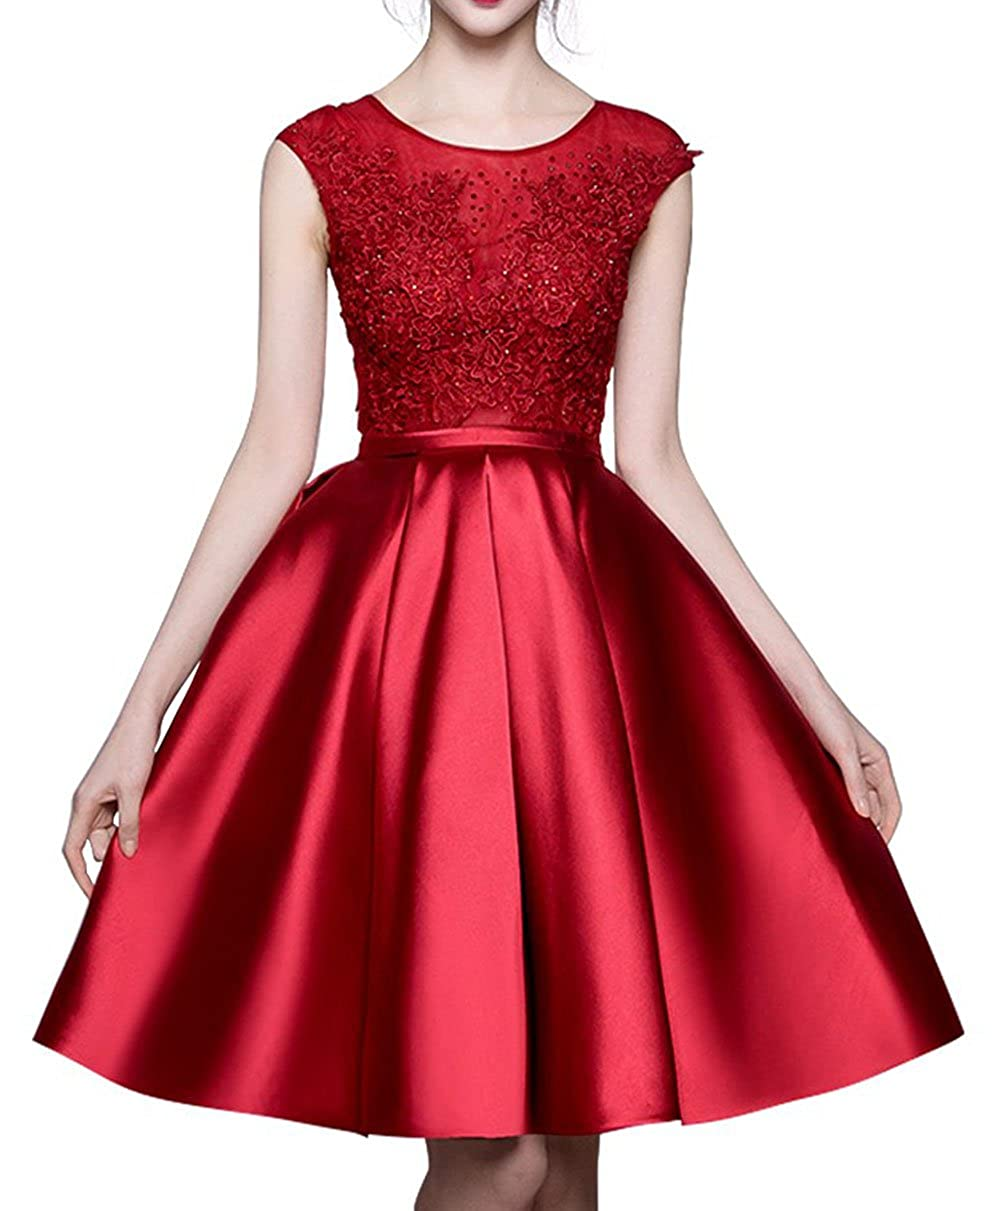 b5ed48aba8 BRL MALL Women s Short Lace Homecoming Dress Bridesmaid Formal Gowns BRL39  at Amazon Women s Clothing store